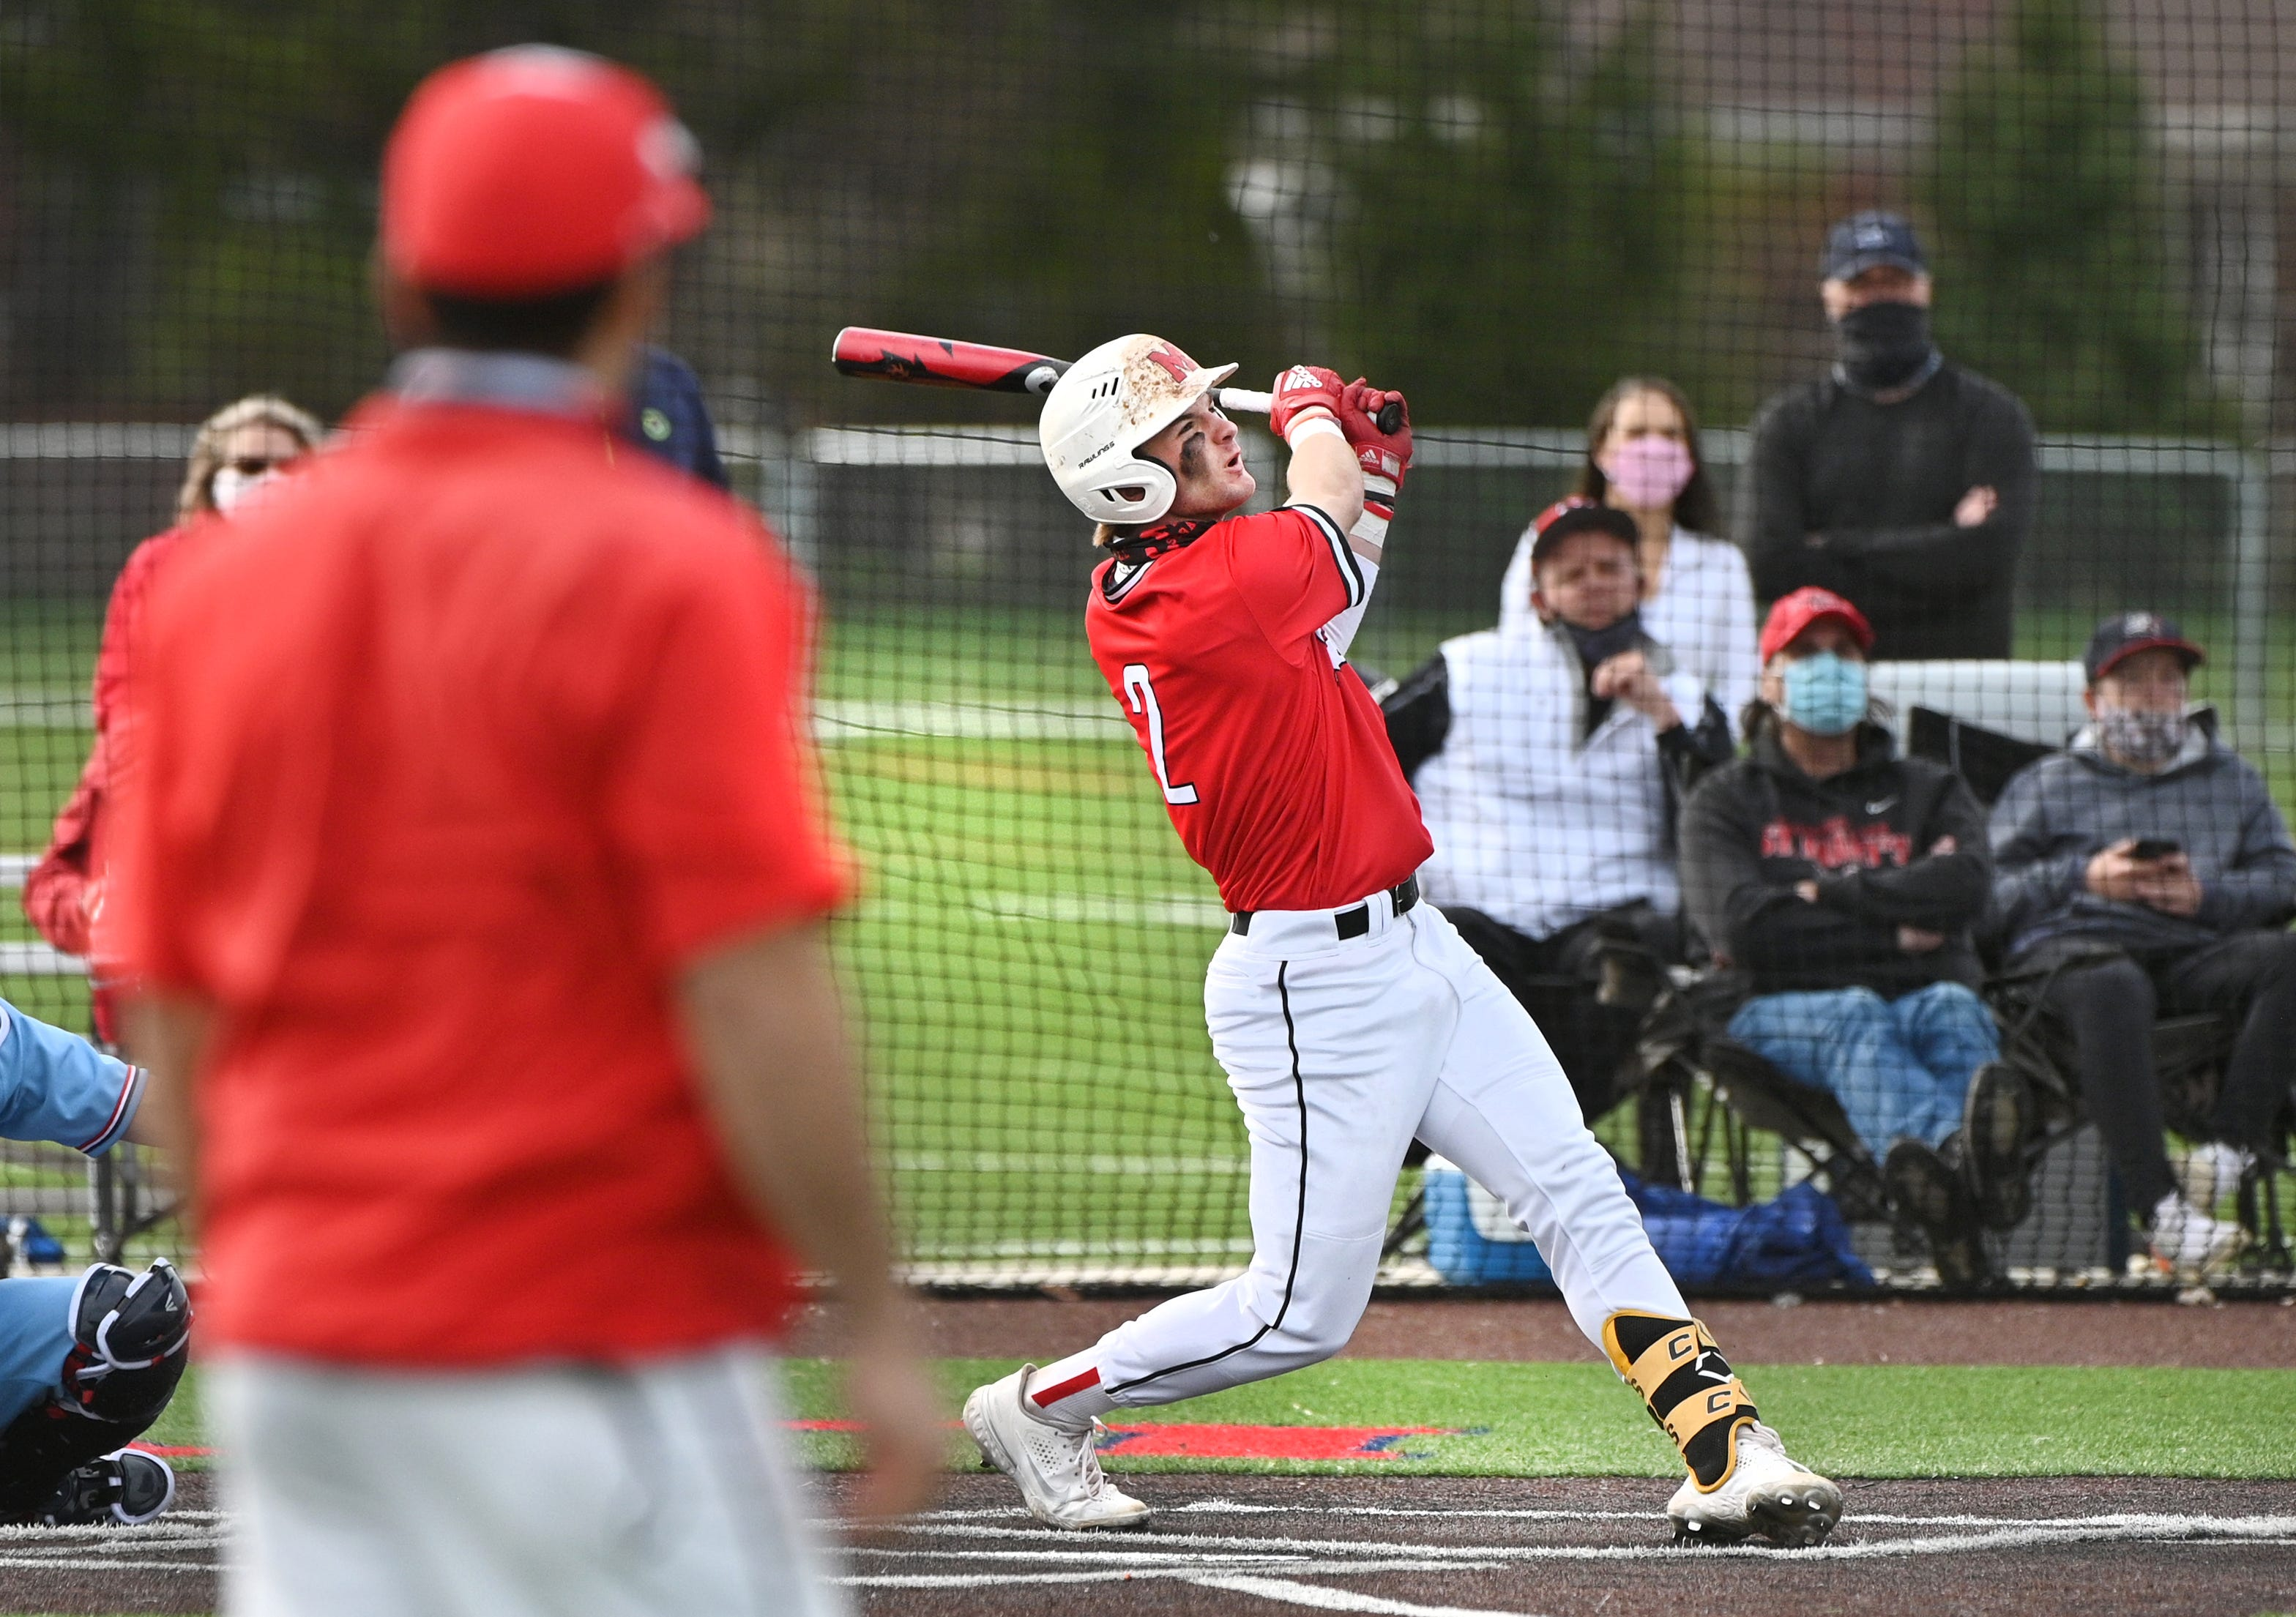 Top prospect Alex Mooney focuses on Orchard Lake St. Mary's, not growing MLB Draft buzz 1